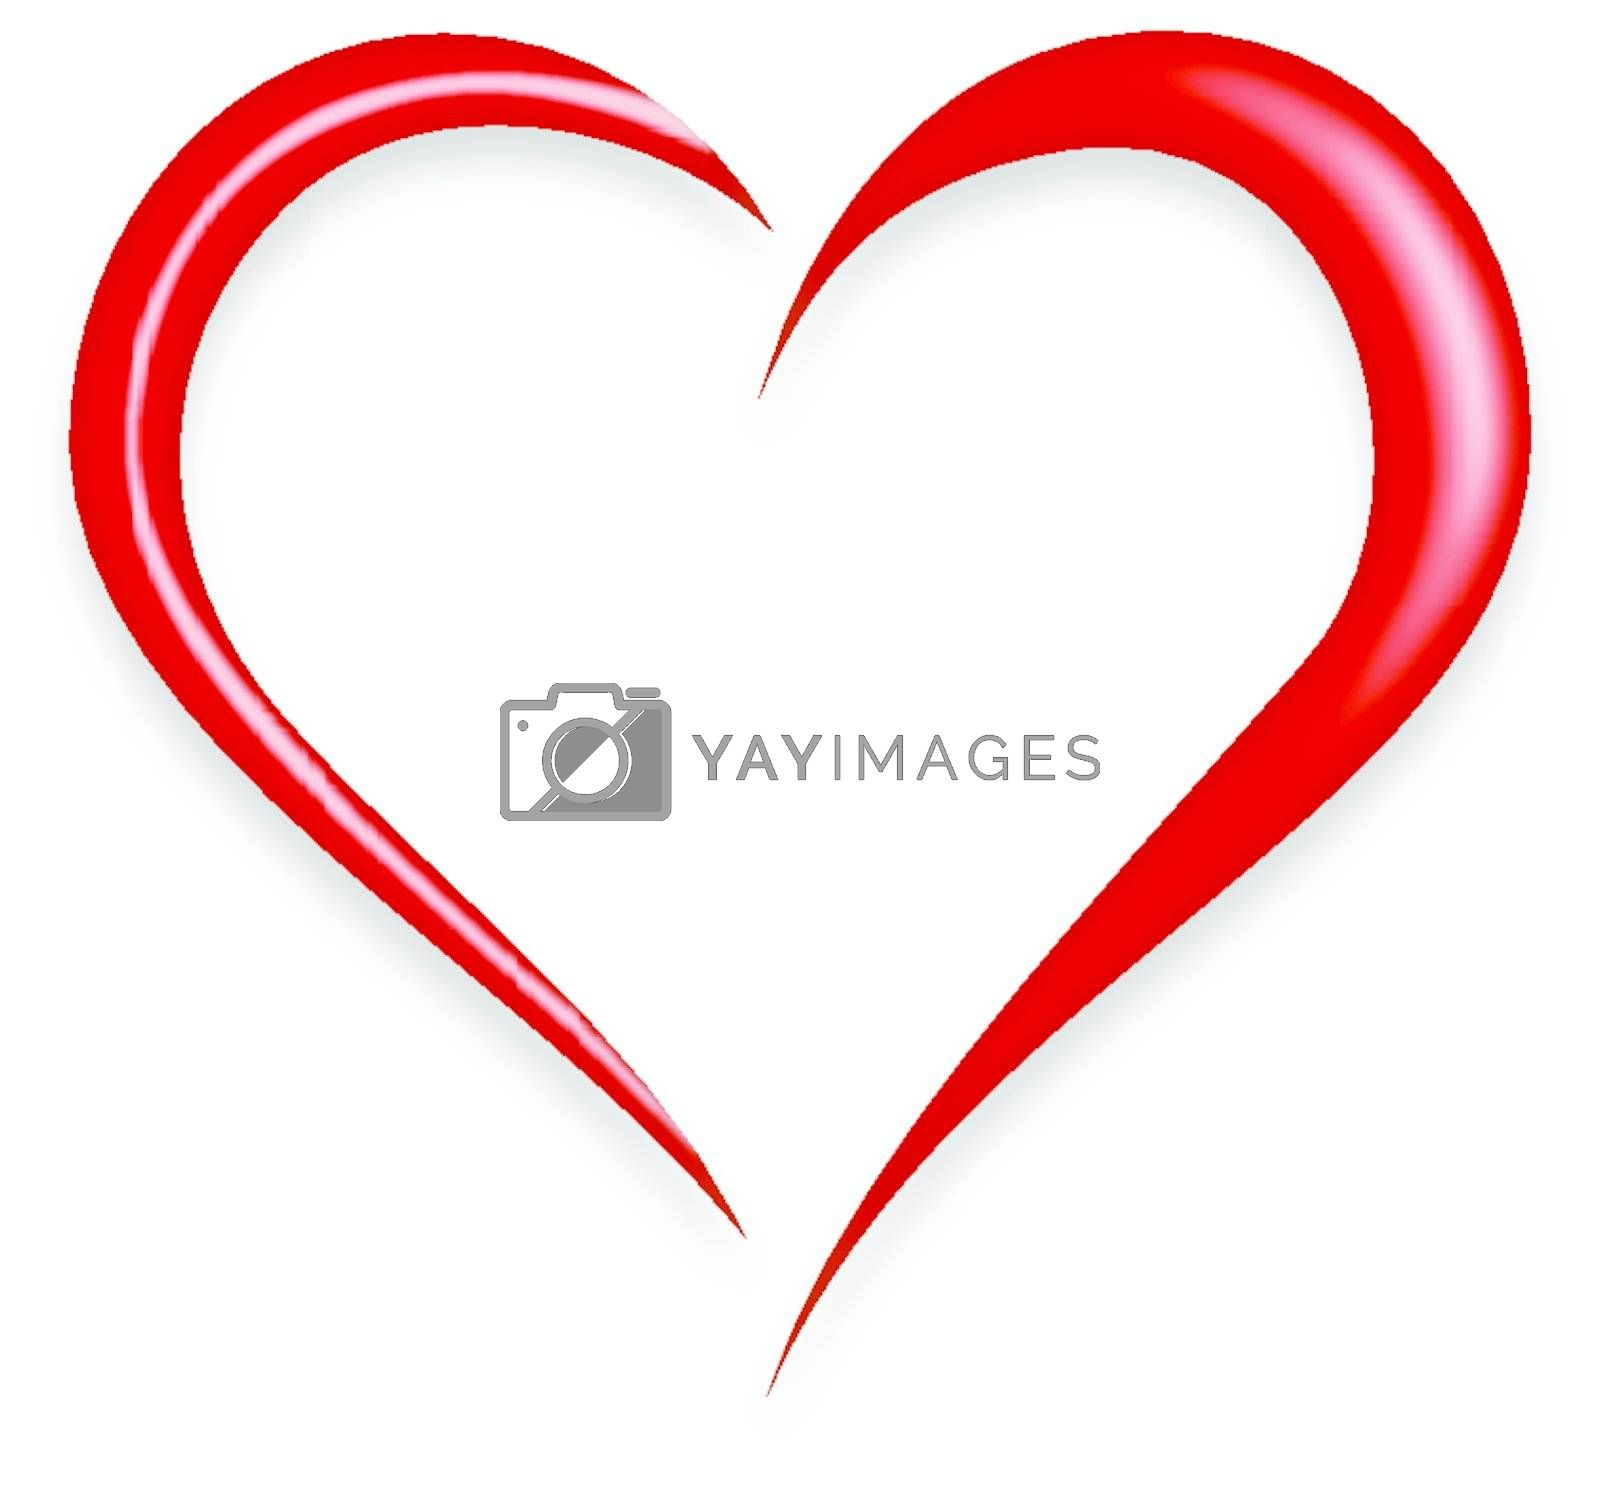 Red Love Heart Vector Illustration isolated on white background